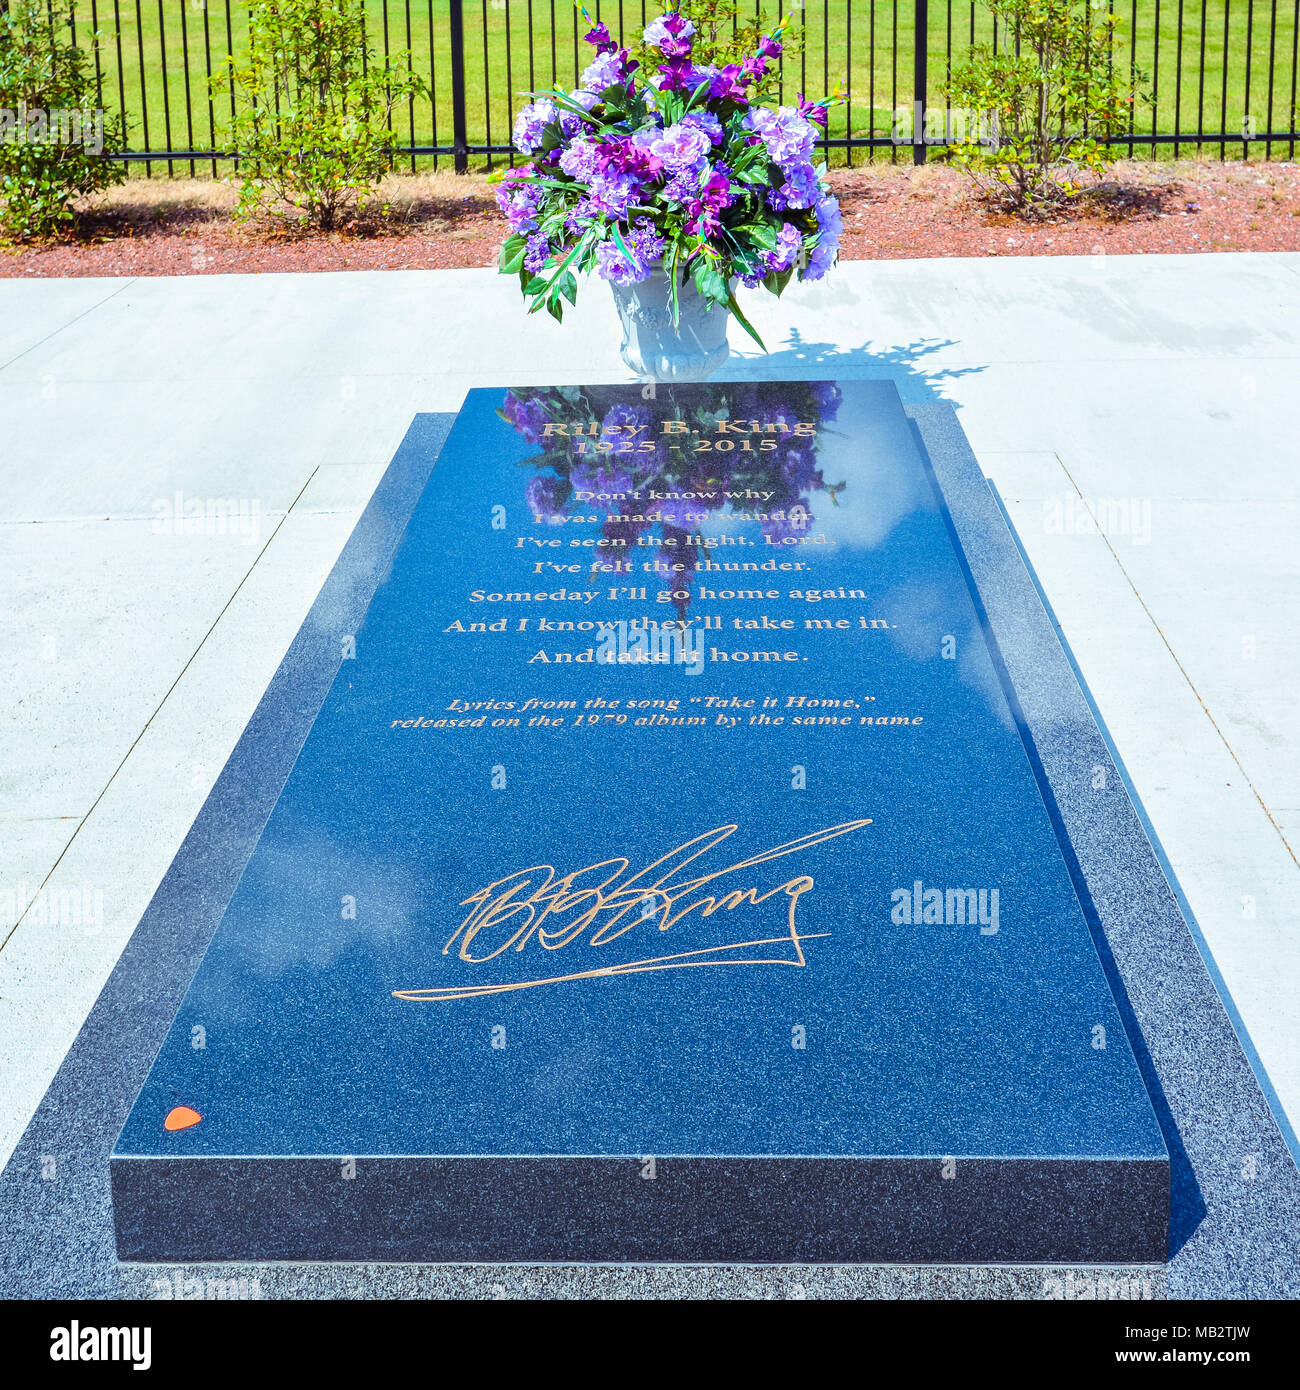 Indianola, MS - Sept. 22, 2017: B.B. King's Gravesite. B.B. King was an American blues singer, electric guitarist, songwriter, and record producer. - Stock Image